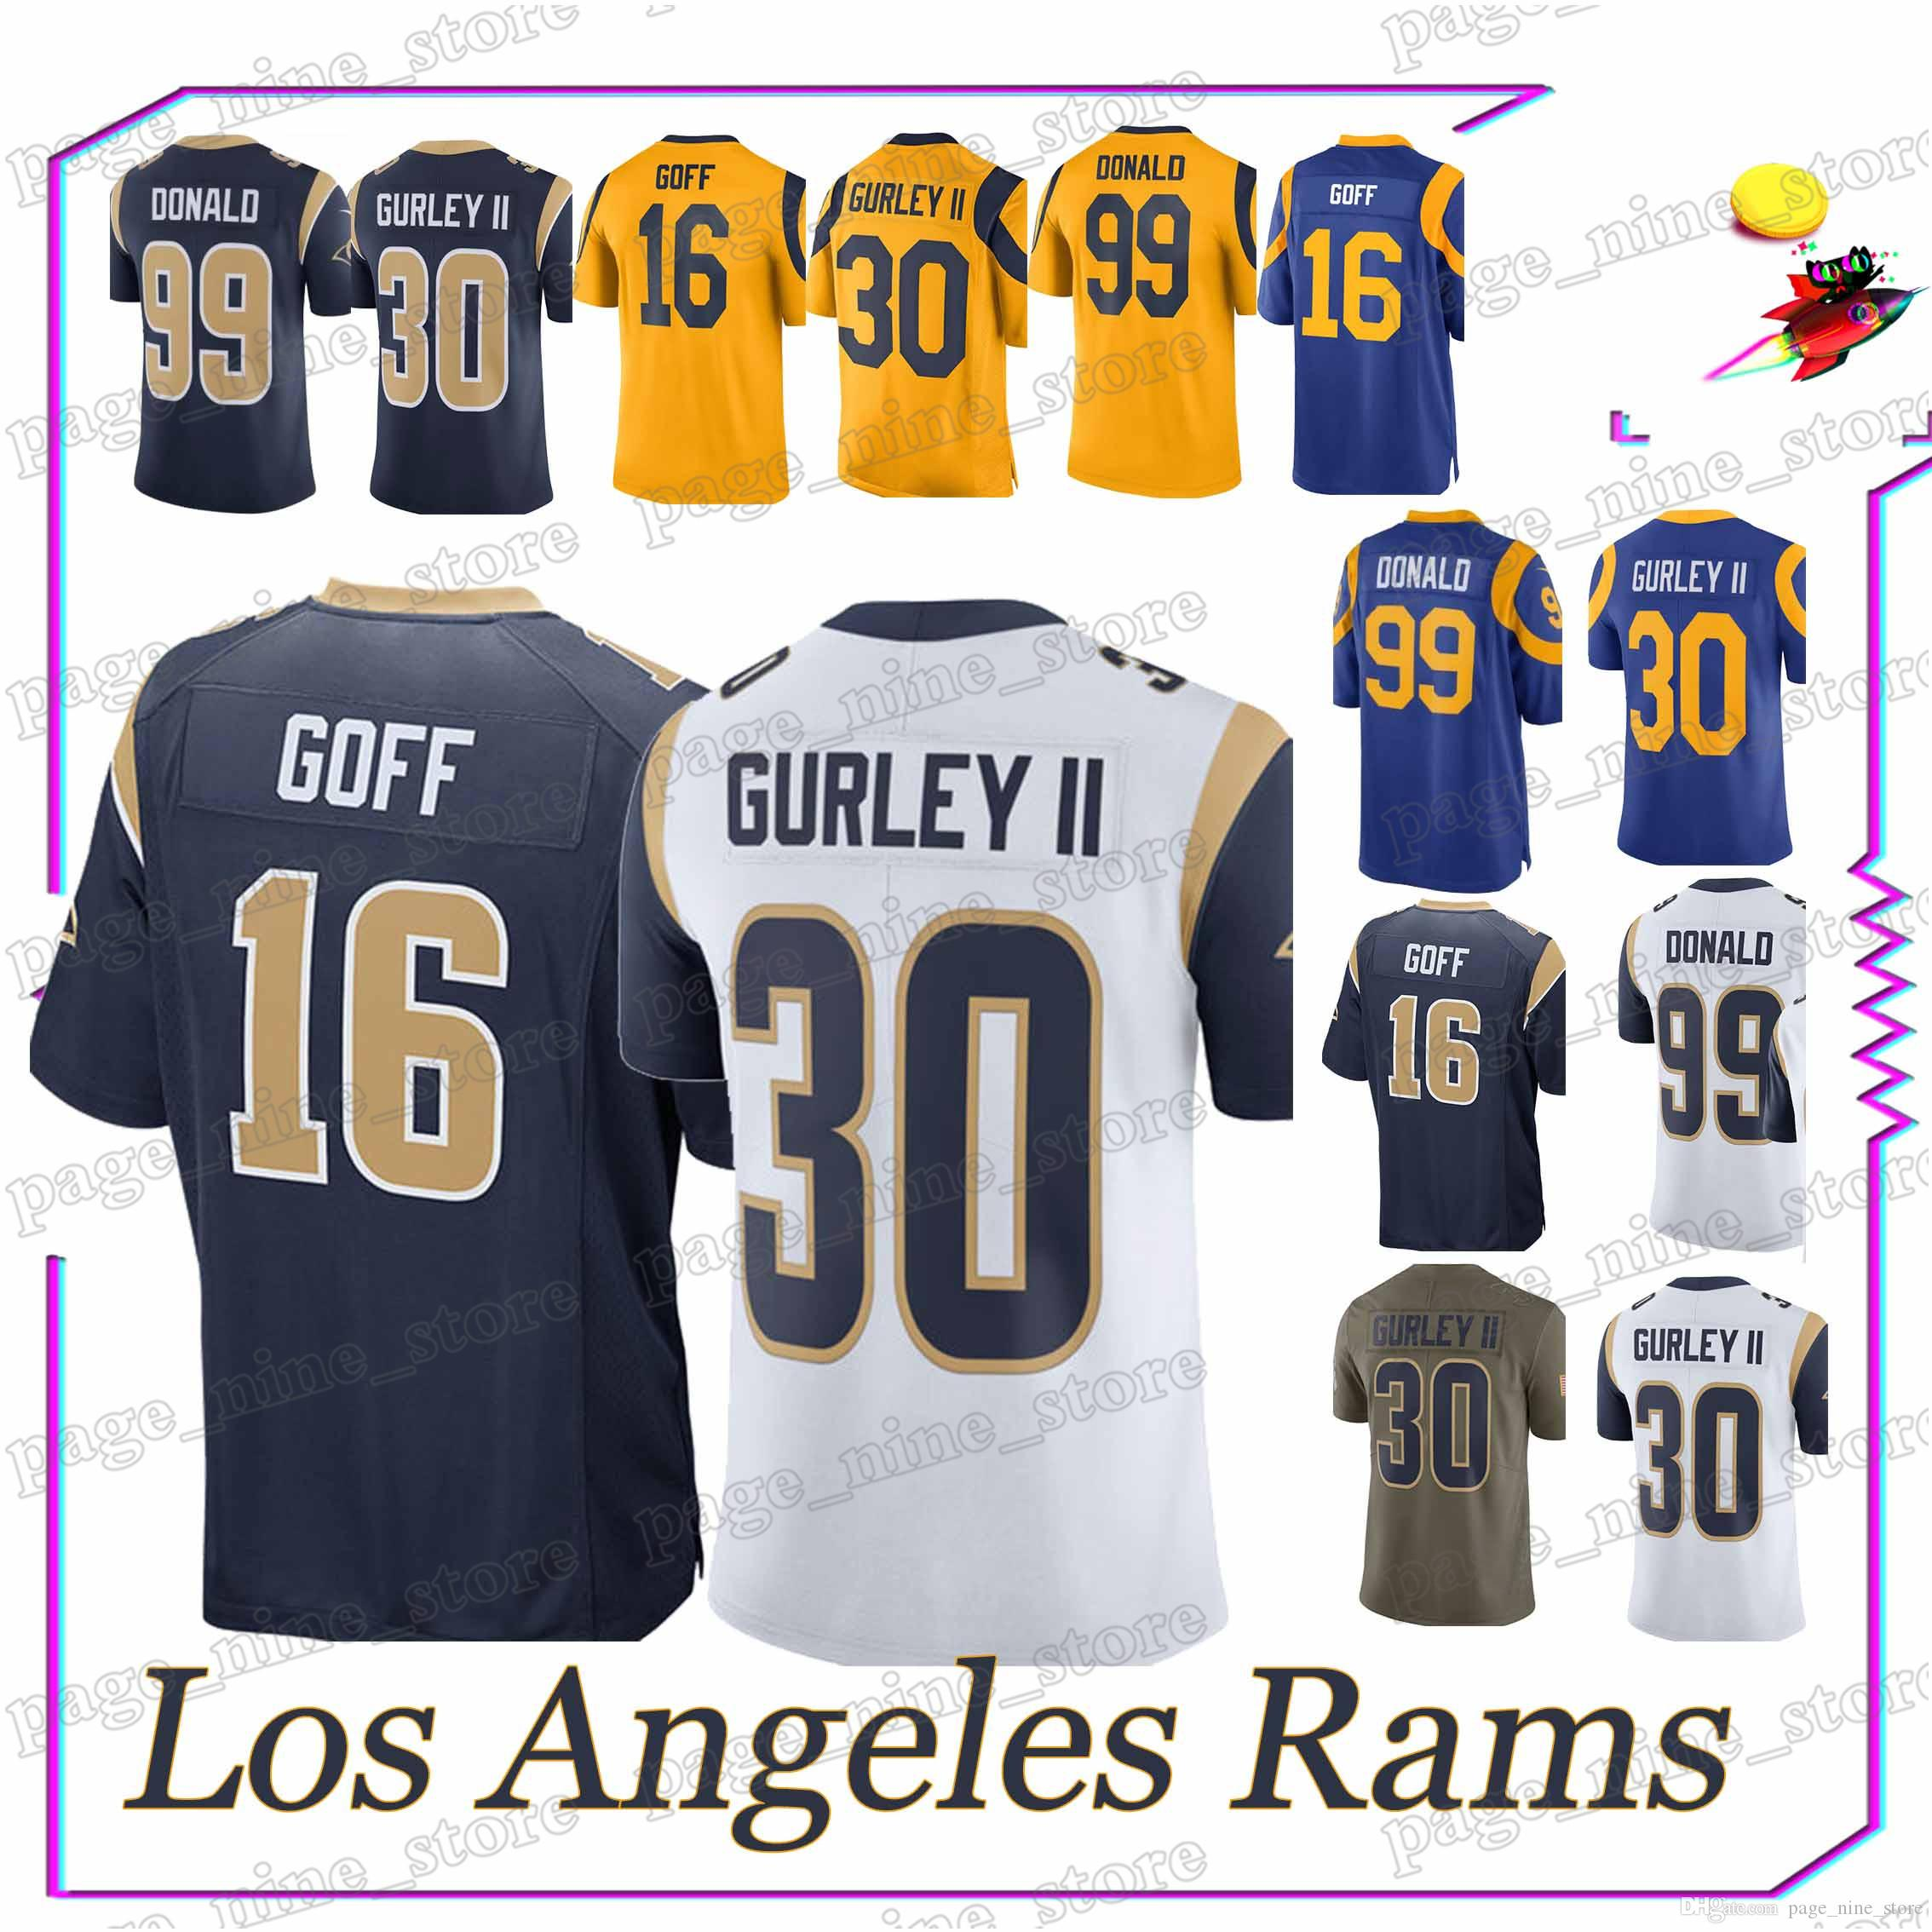 2018 Los Angeles Rams Jersey30 Todd Gurley 16 Jared Goff 99 Aaron Donald  High Quality 18 19 New Men Jerseys From Page nine store 944d579ed70